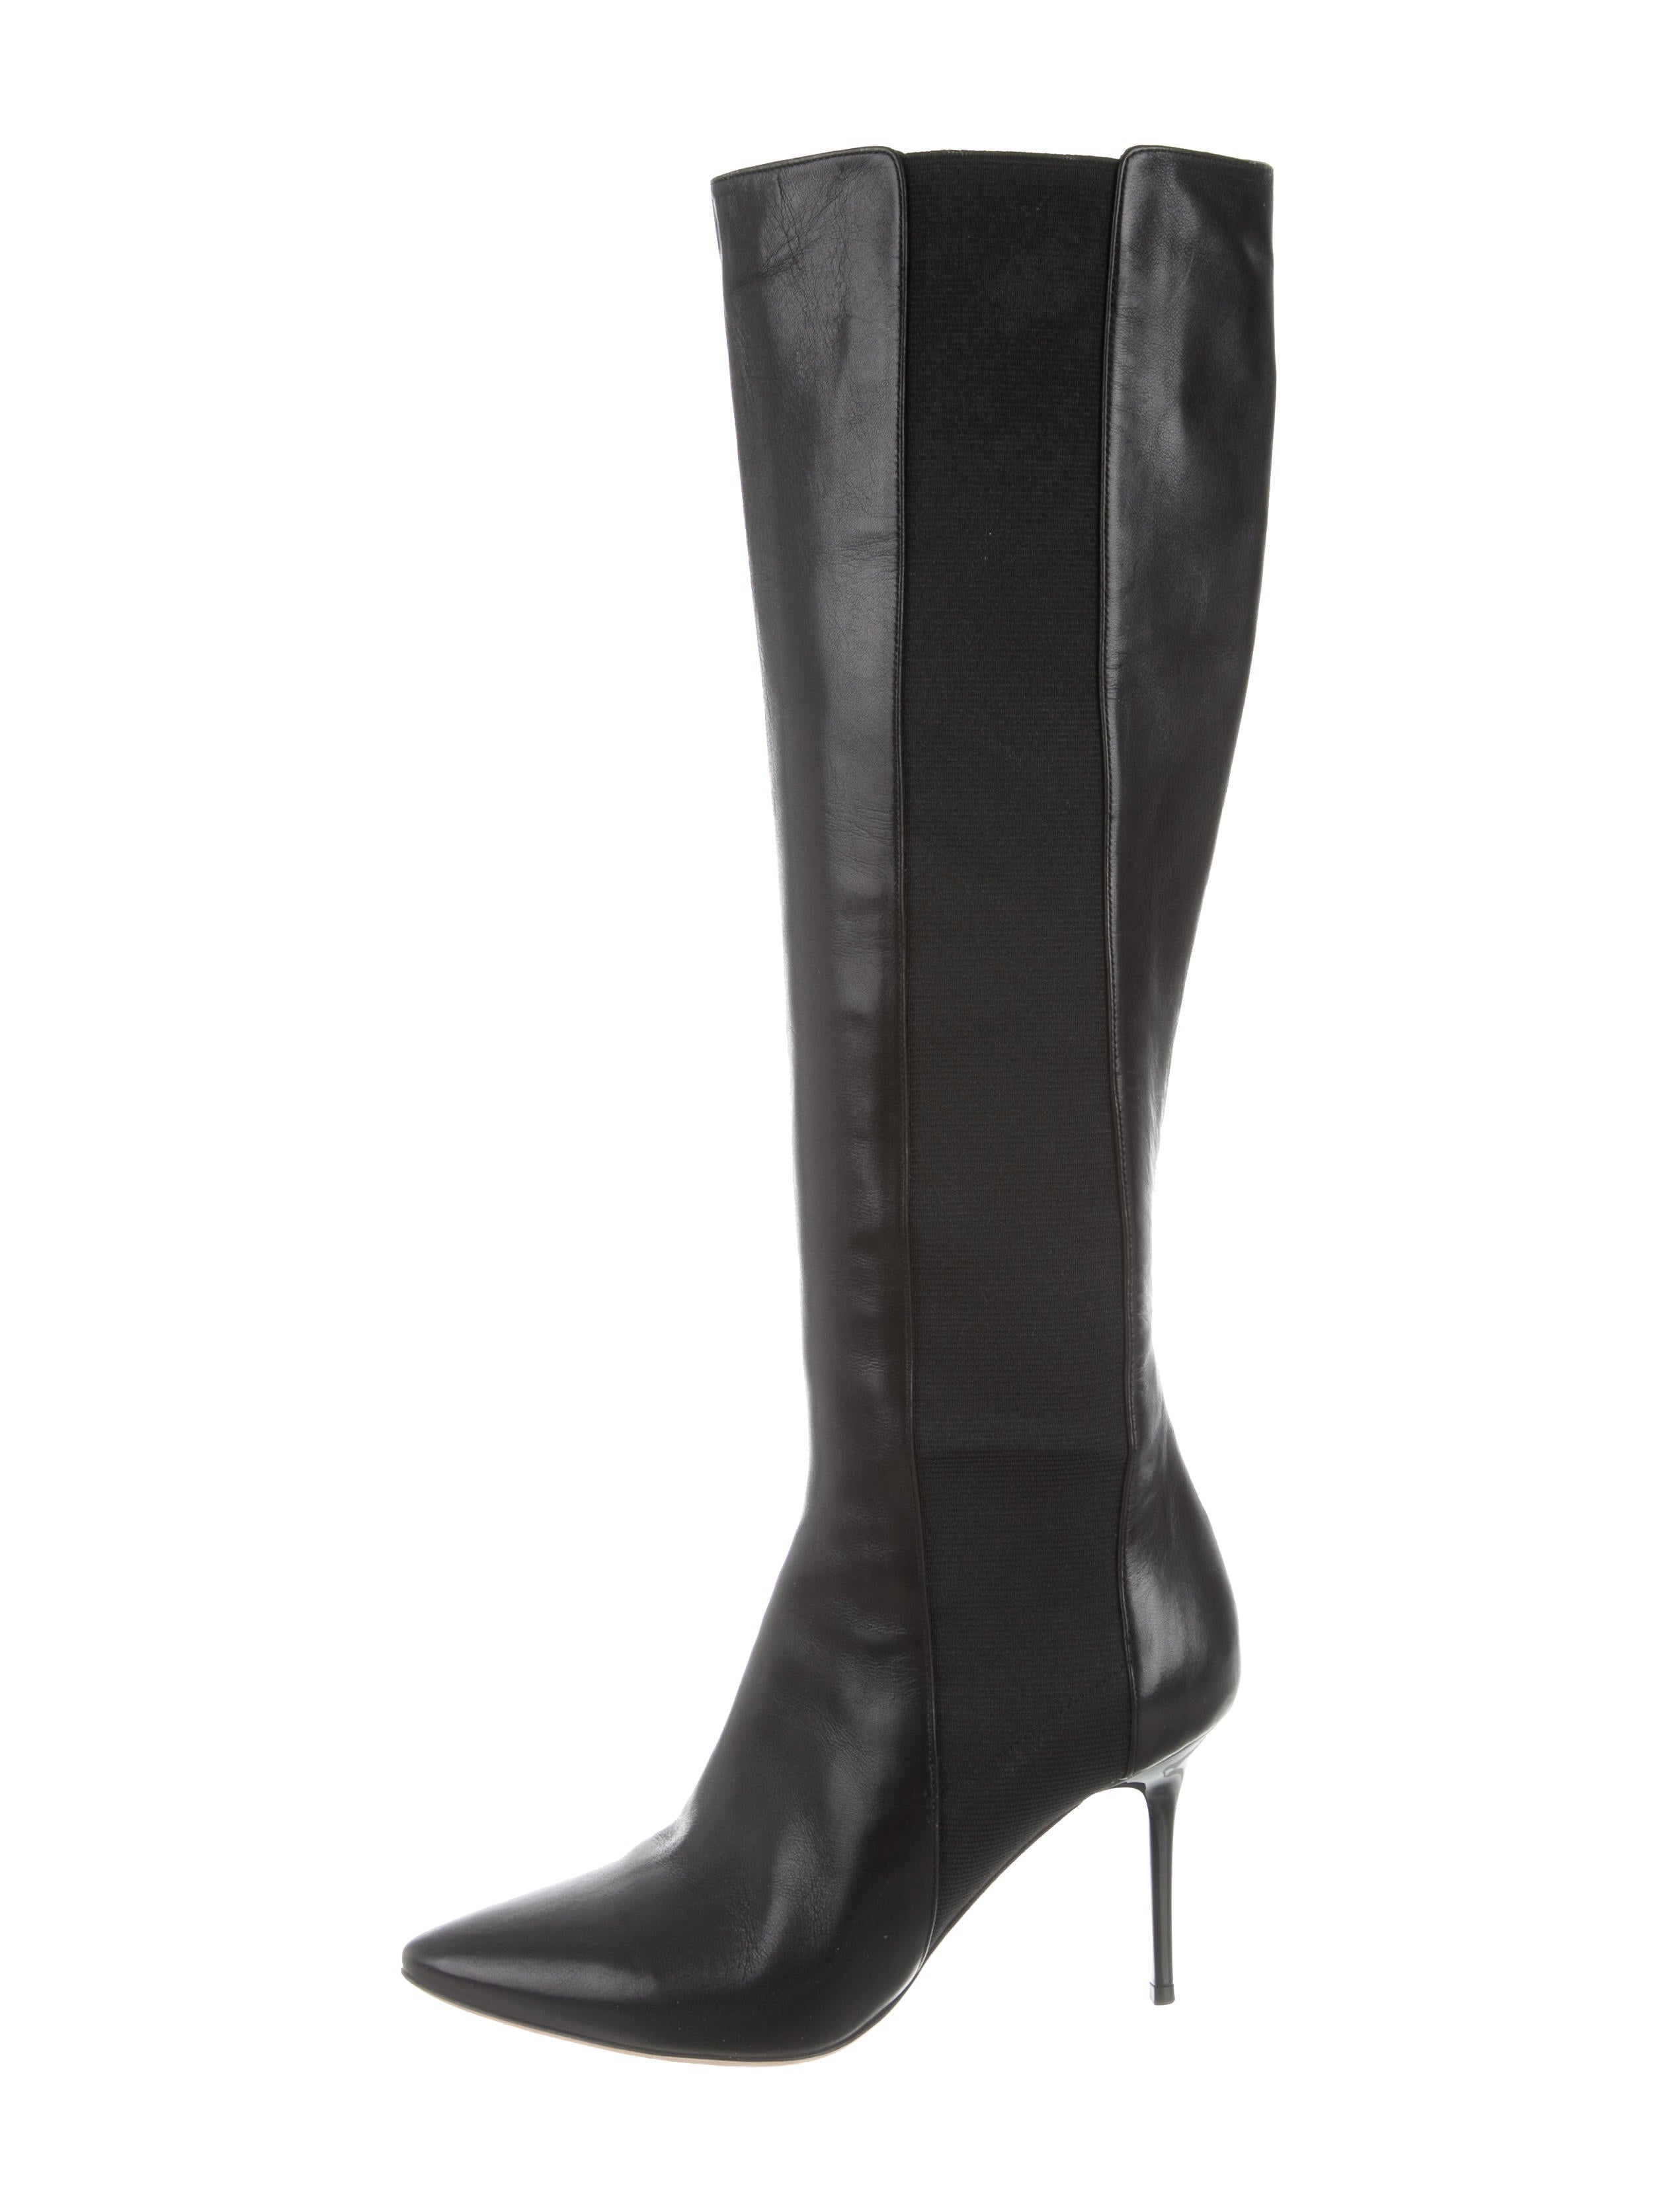 jimmy choo pointed toe knee high boots shoes jim64007